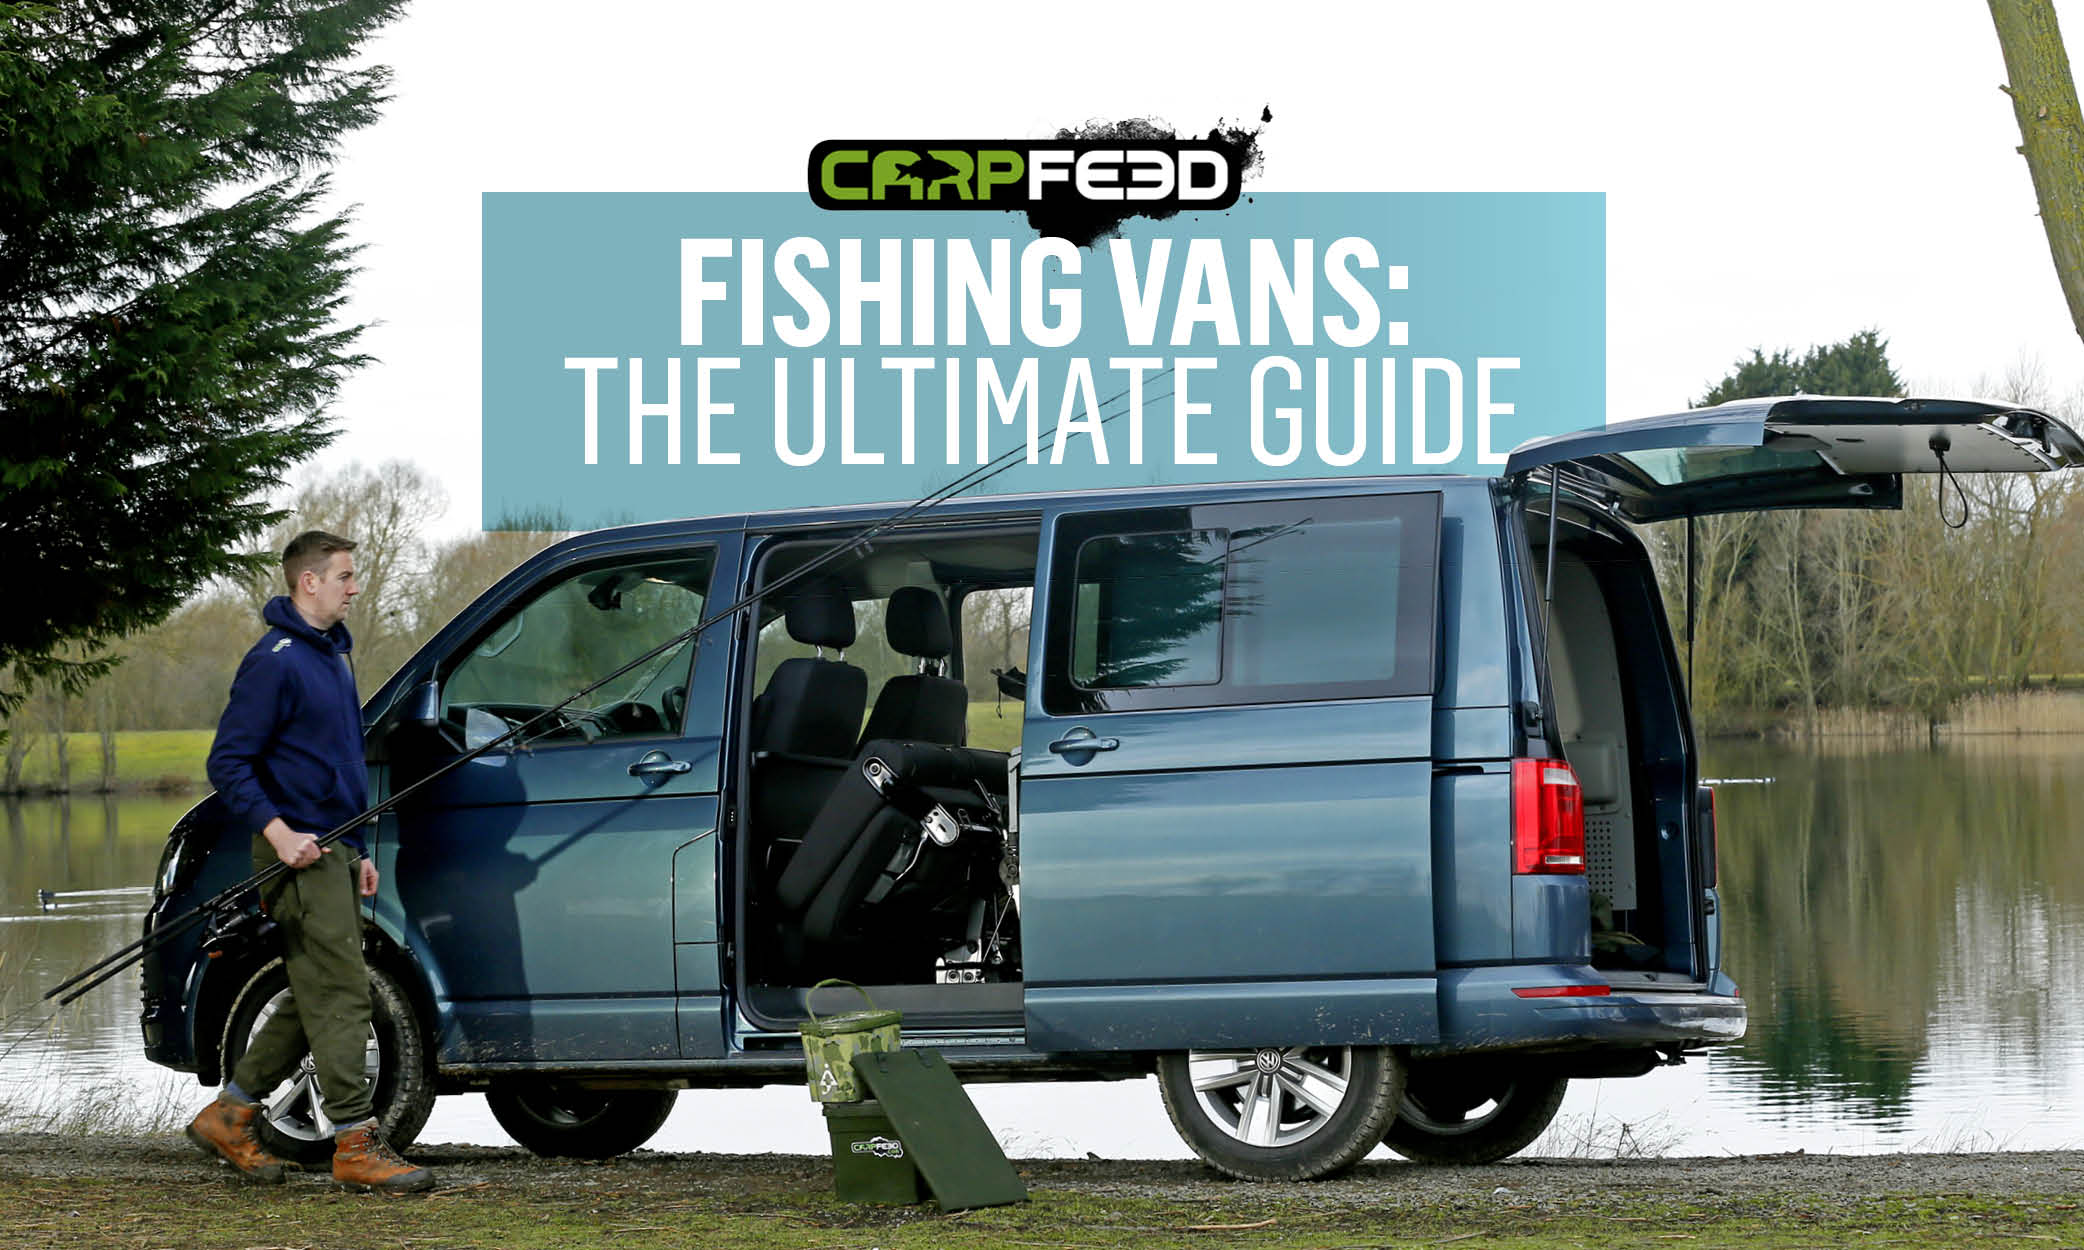 The best fishing vans: Caddy-sized vans — Carpfeed